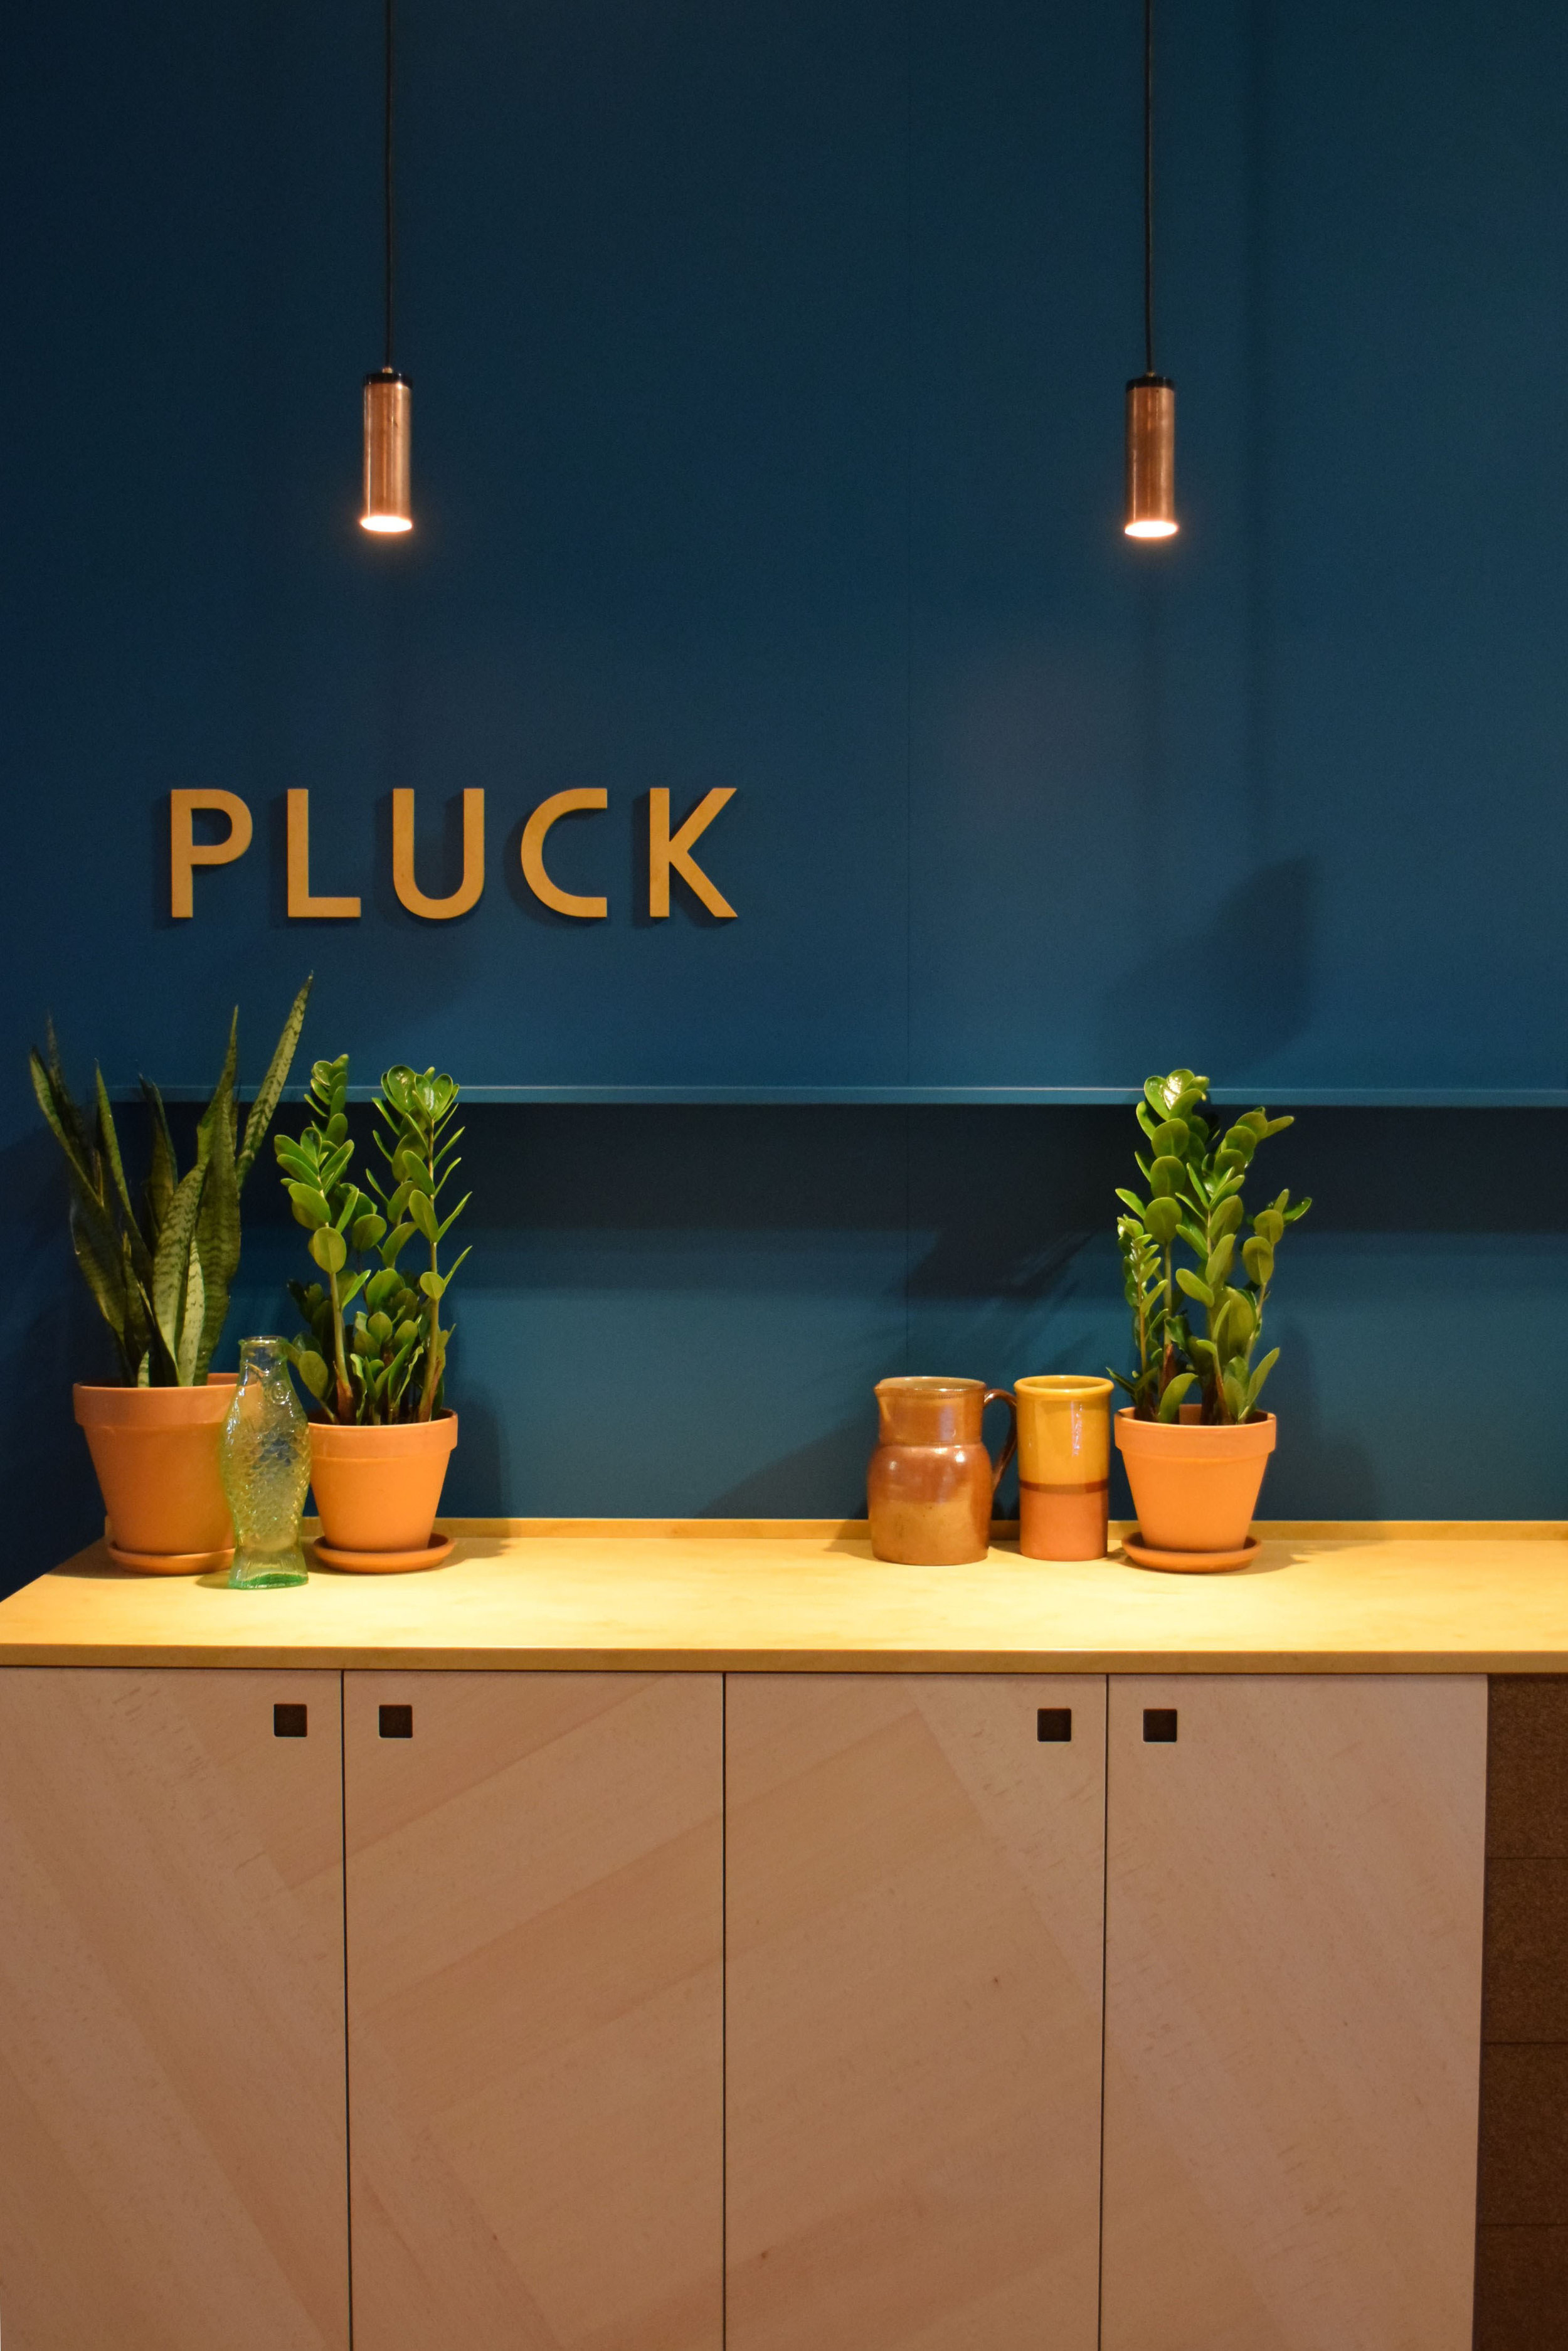 Pluck kitchens ©Detail Movement